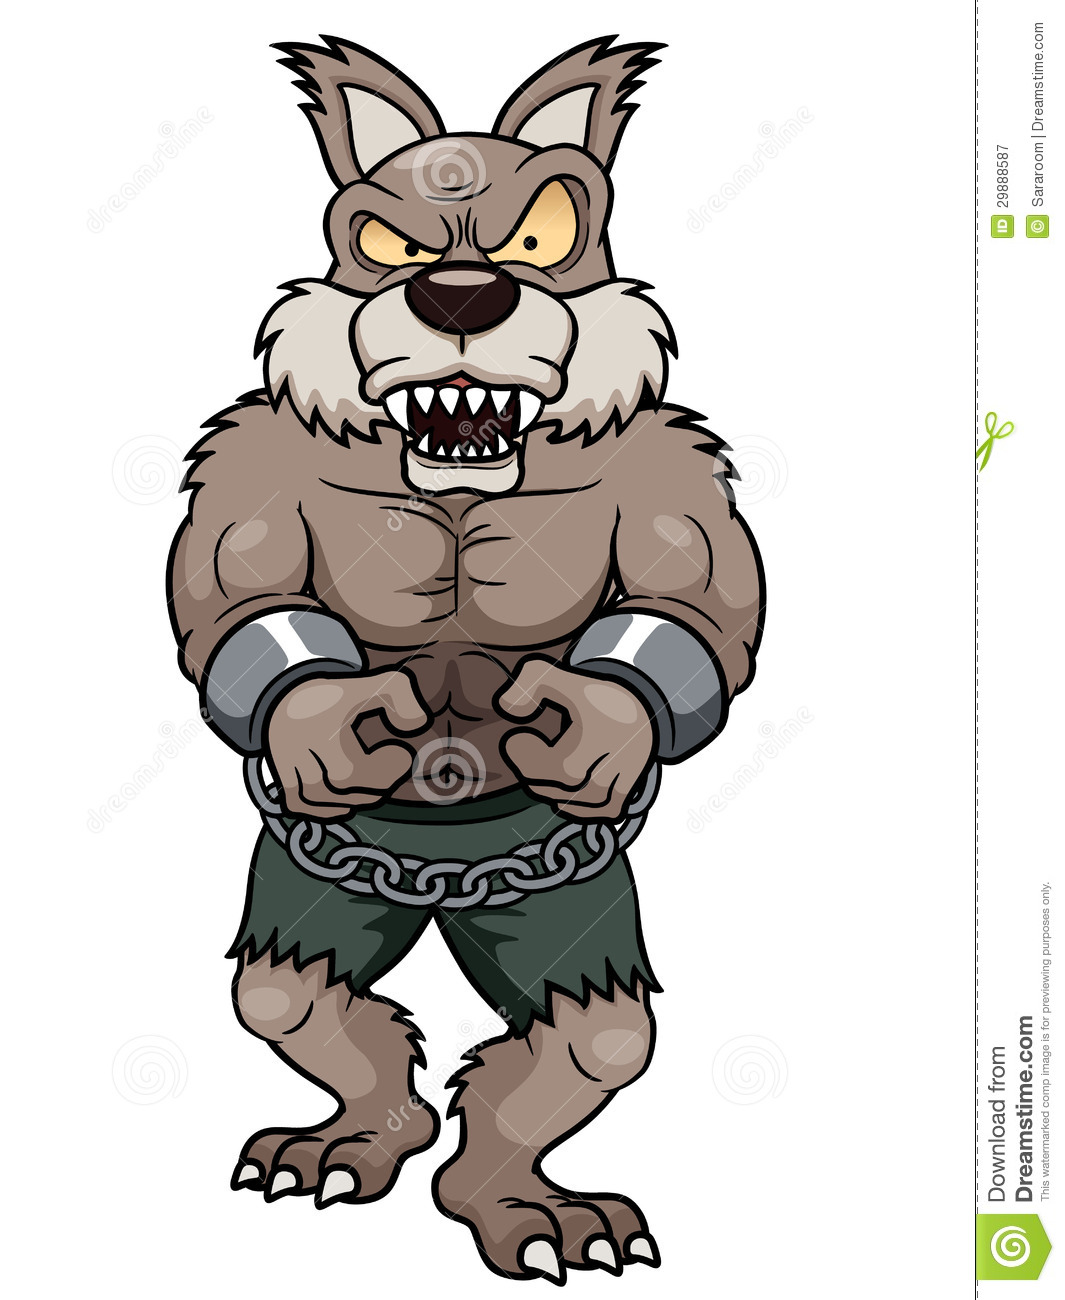 Cartoon Werewolf Royalty Free Stock Photography - Image: 29888587: www.dreamstime.com/royalty-free-stock-photography-vector...